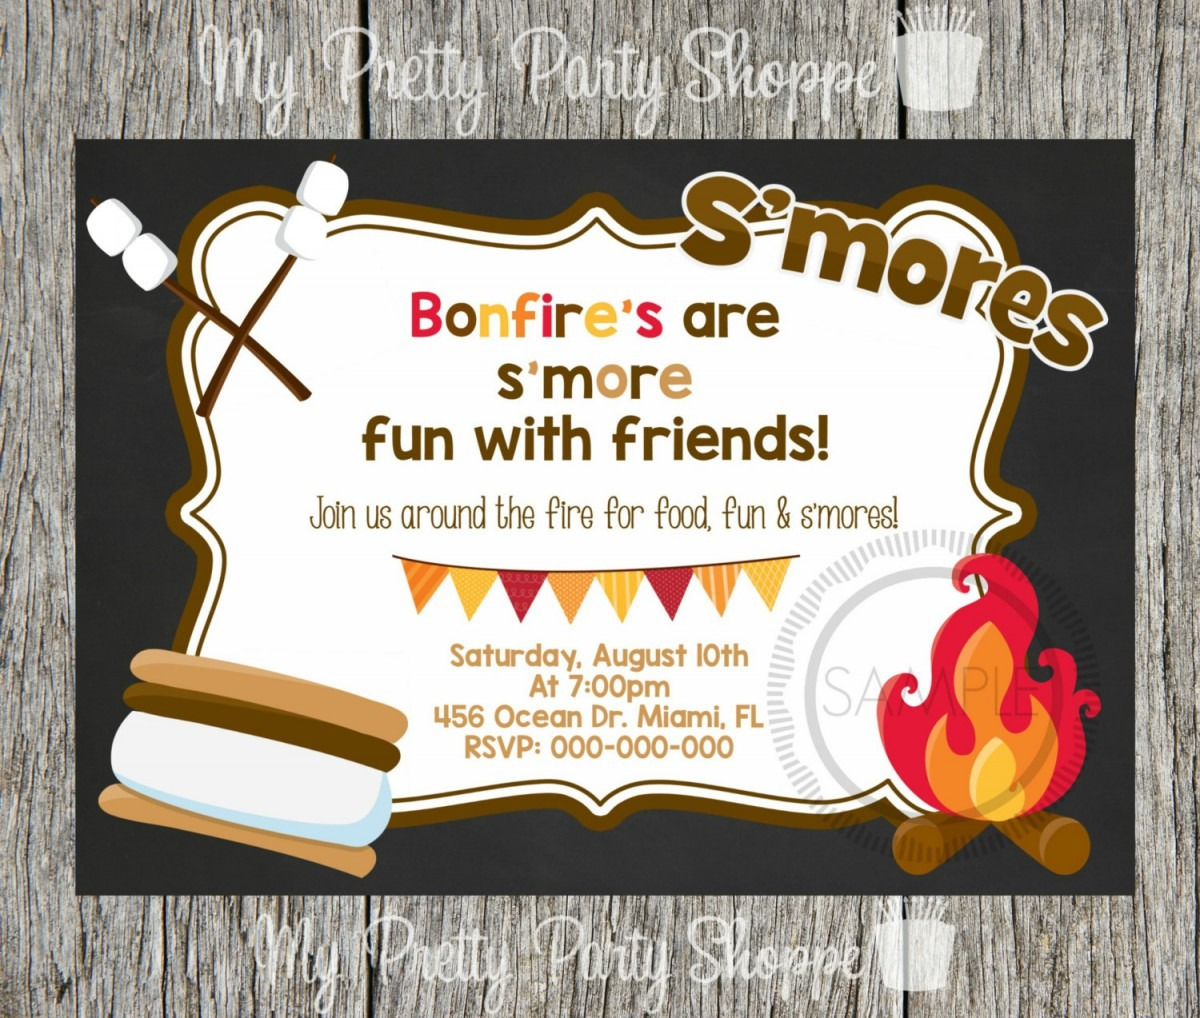 Bonfire Party Invitations Bonfire Party Invitations With The